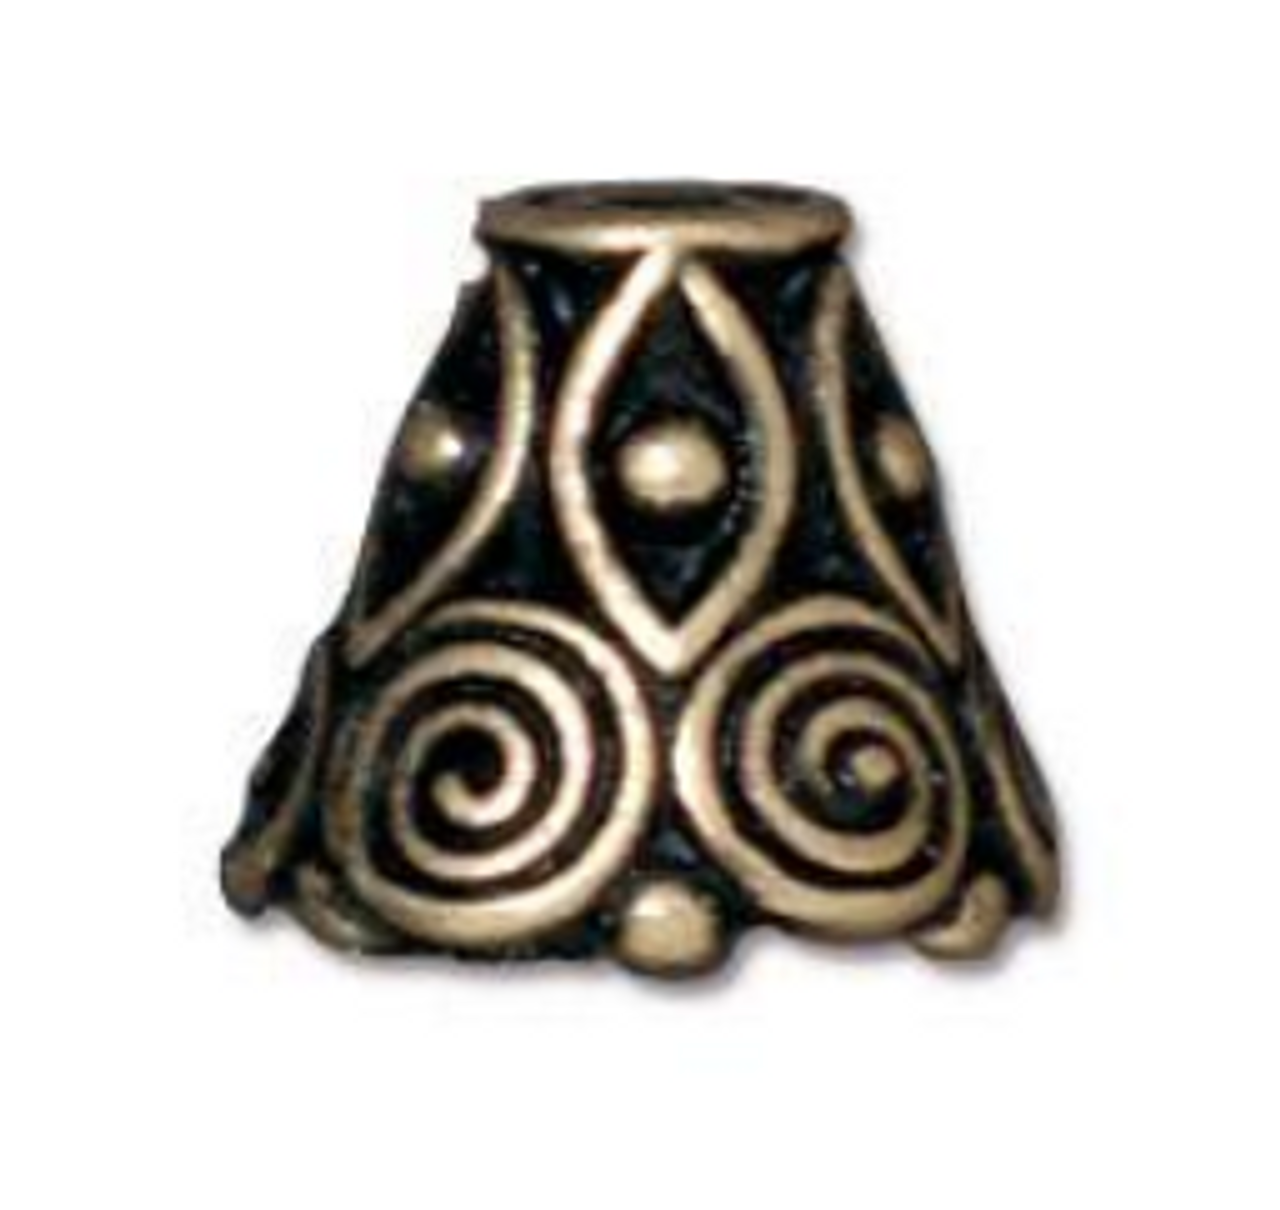 Antique Gold Spiral Bead Cone (2pk) TierraCast